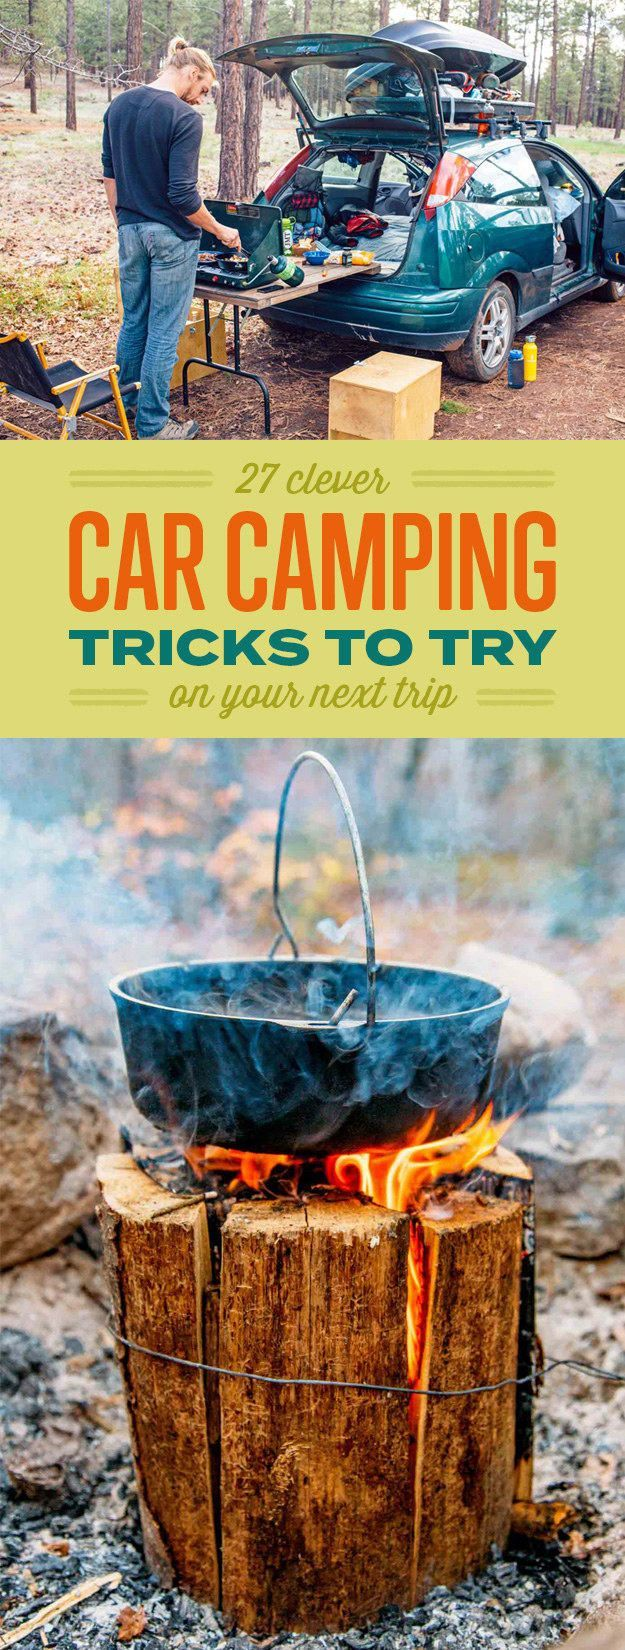 27 Clever Car Camping Tricks To Try On Your Next Trip - Mine is #23 on the list